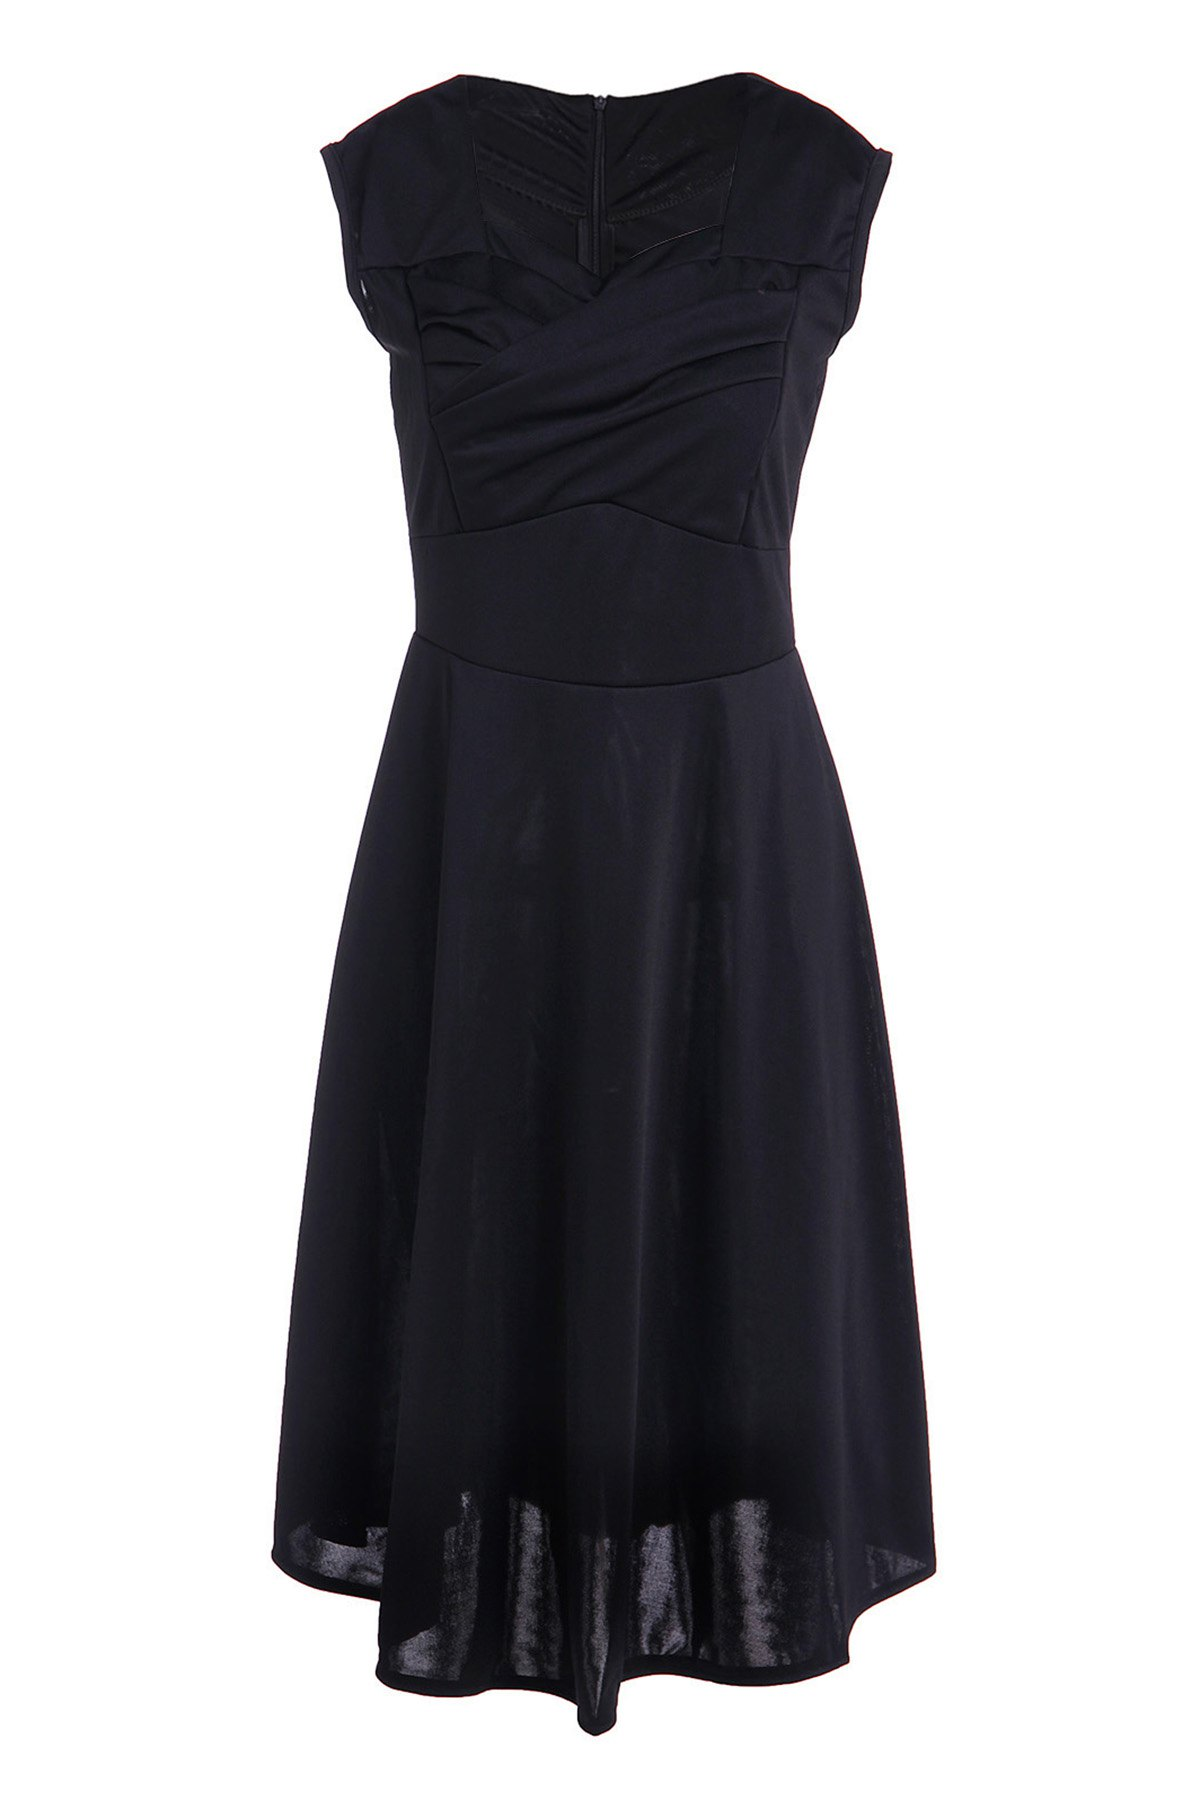 Vintage Pure Color Sweetheart Neck Sleeveless Dress For Women - L BLACK